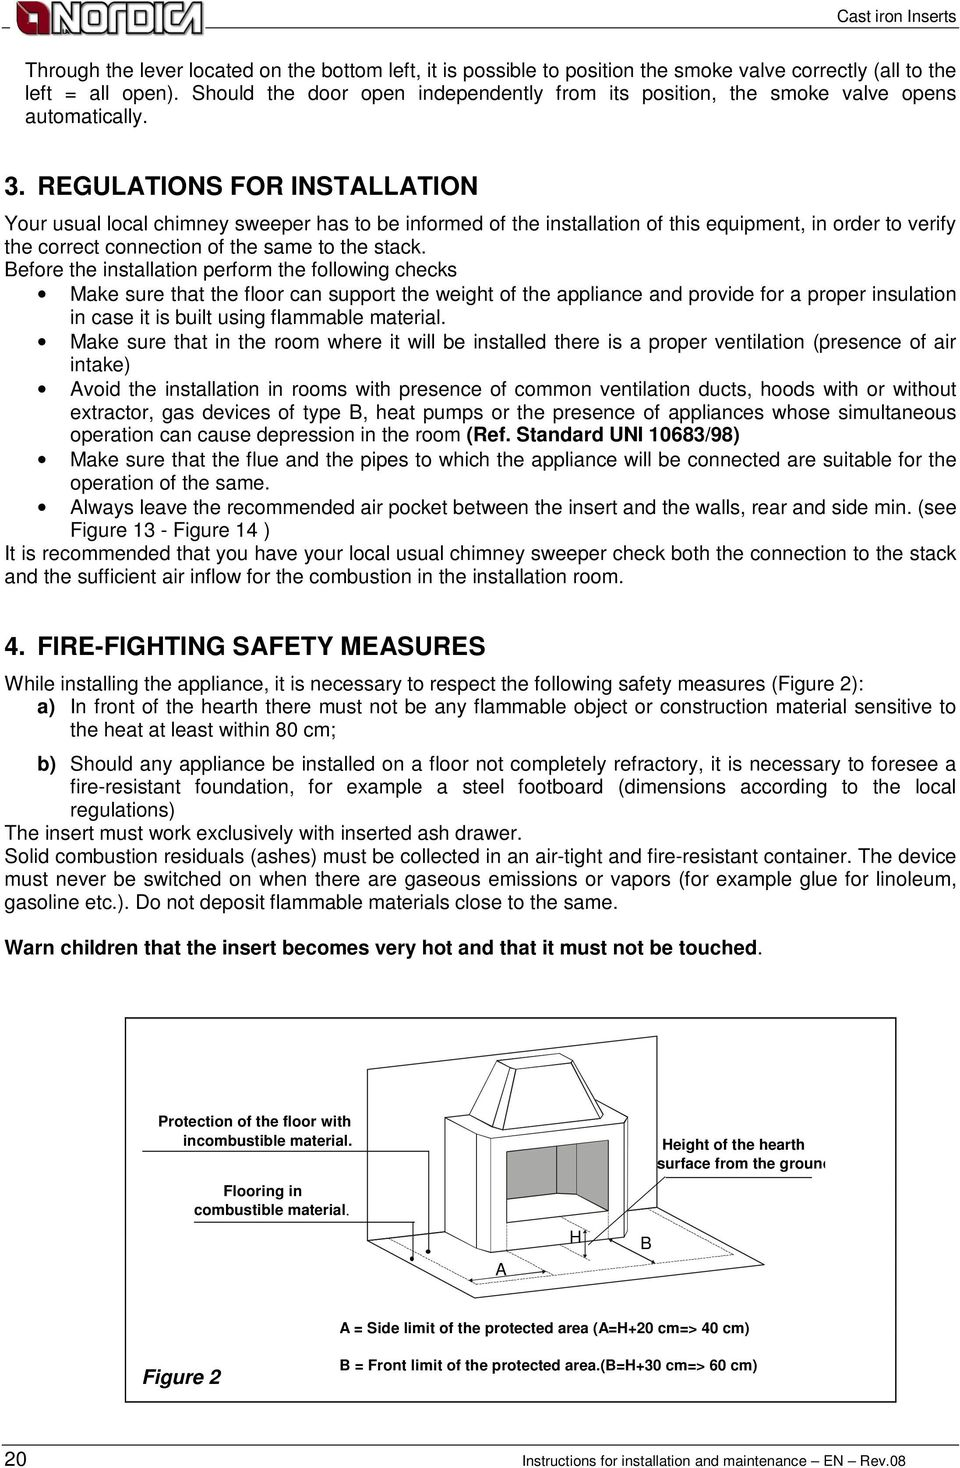 REGULATIONS FOR INSTALLATION Your usual local chimney sweeper has to be informed of the installation of this equipment, in order to verify the correct connection of the same to the stack.